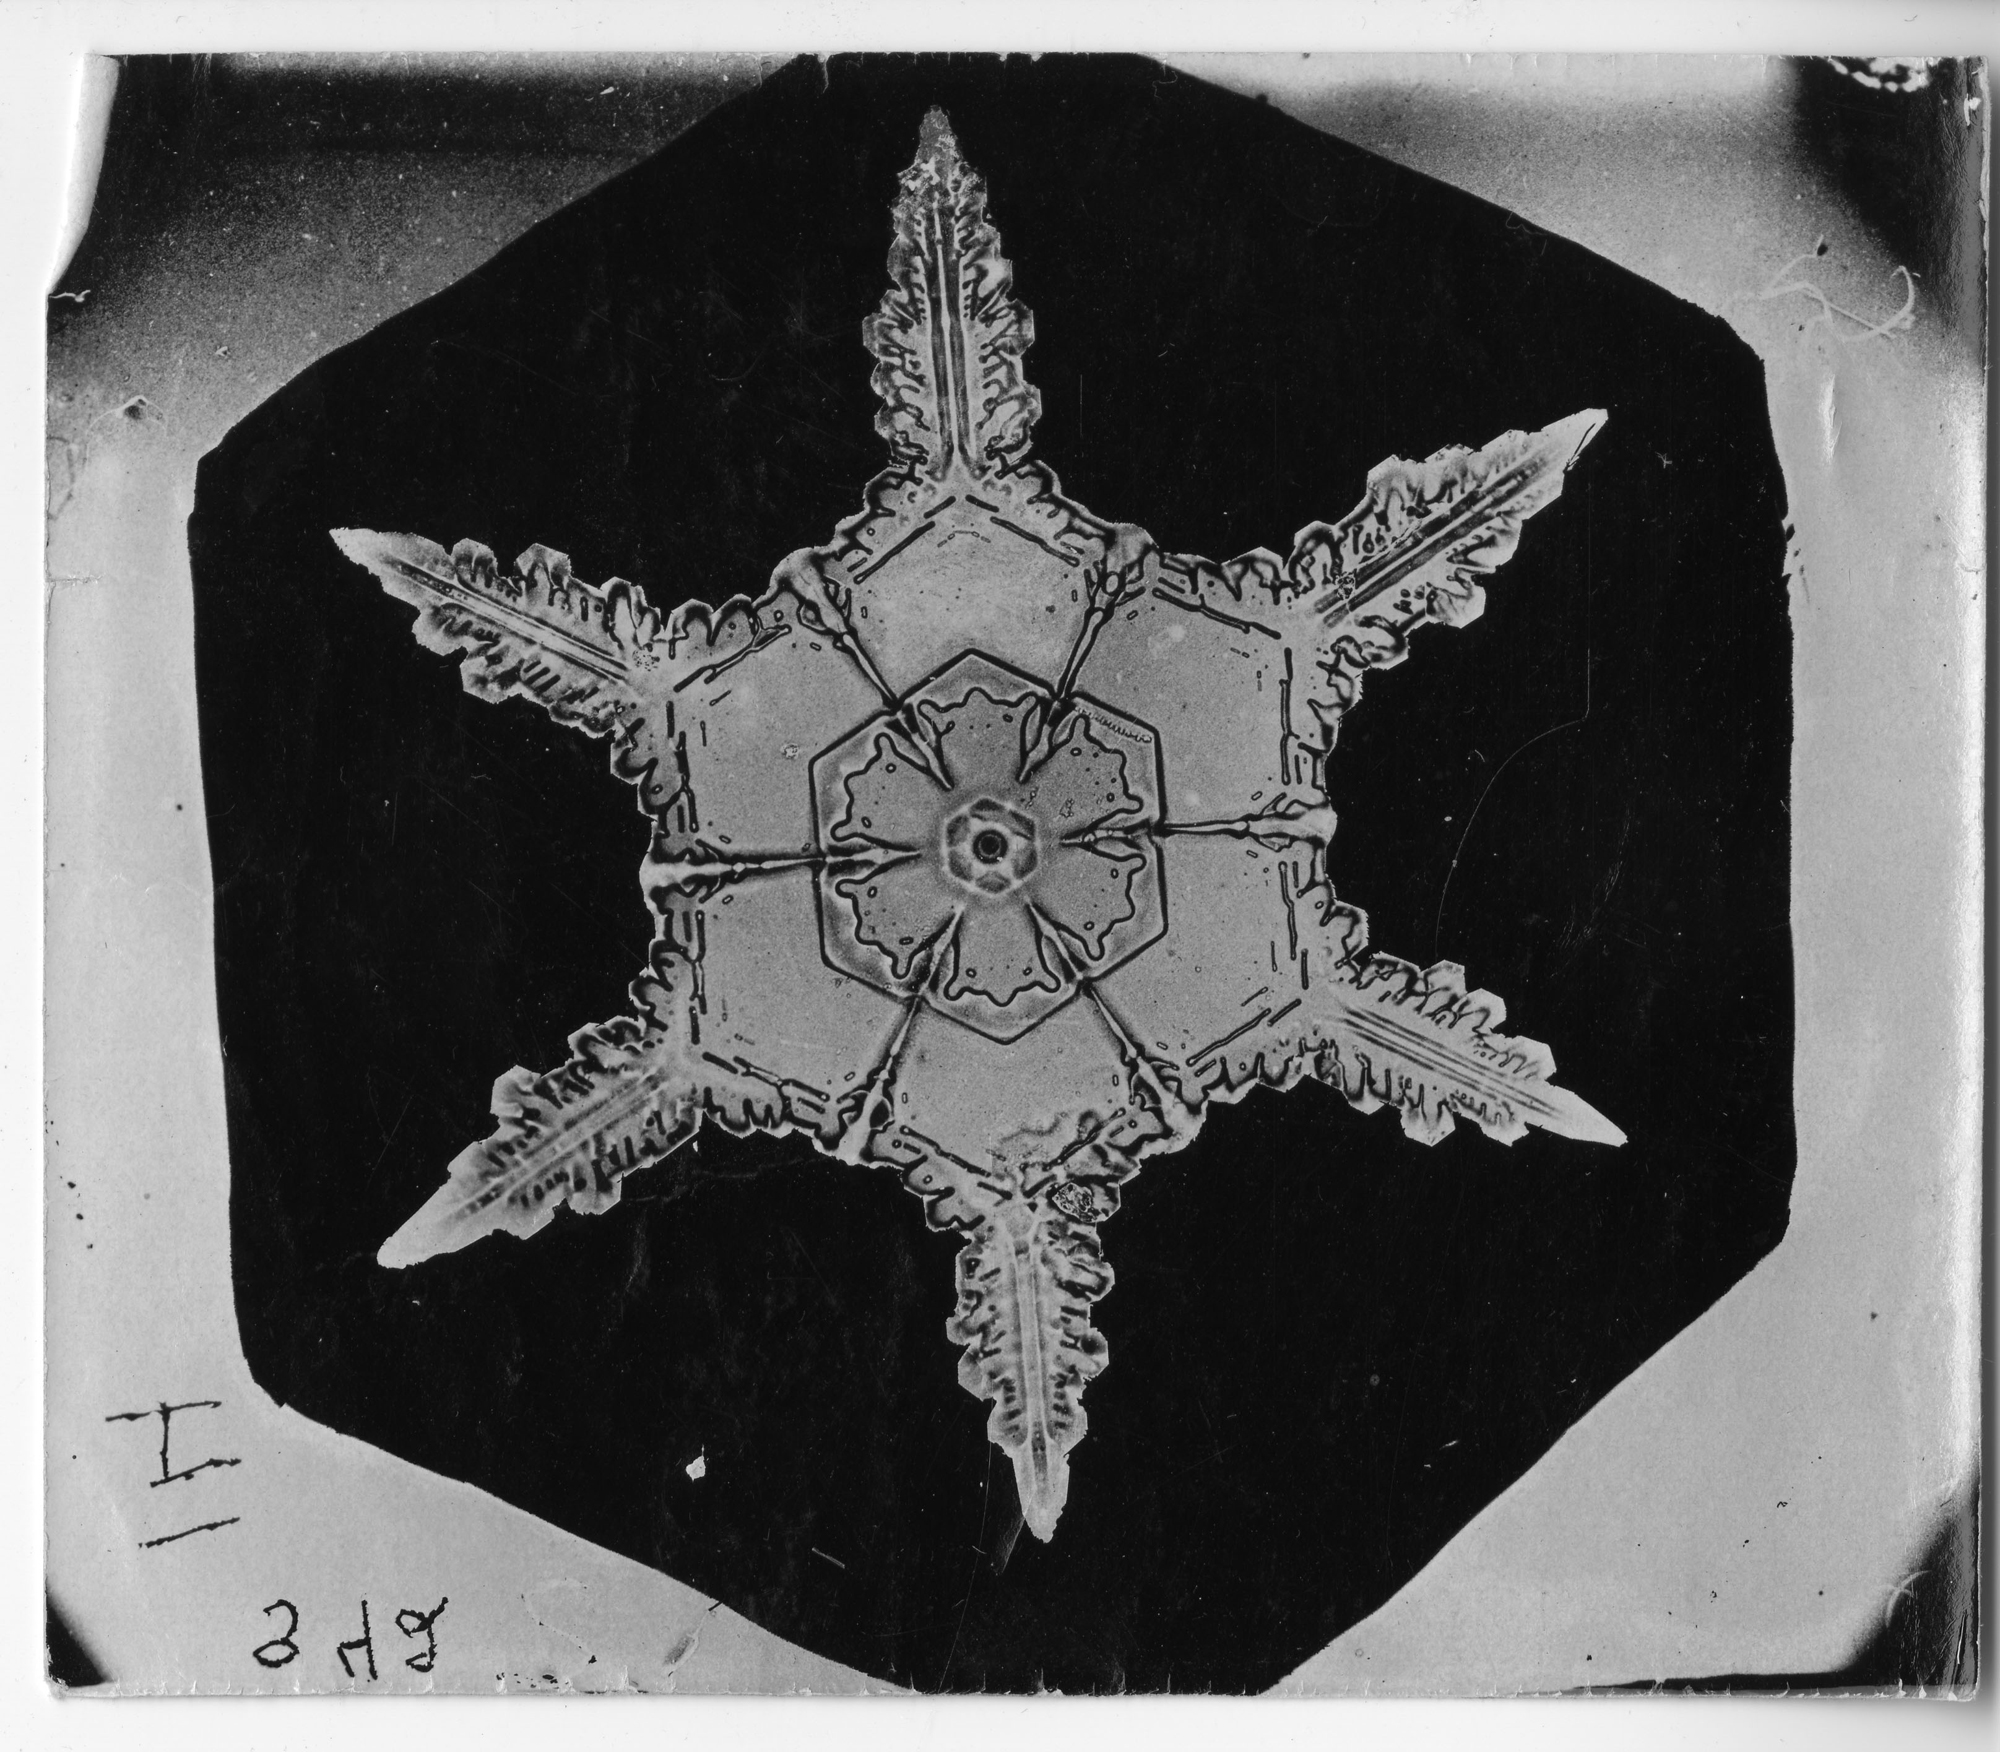 Snowflake Study, between 1890-1903, by Wilson A. Bentley, Smithsonian Institution Archives, Image ID